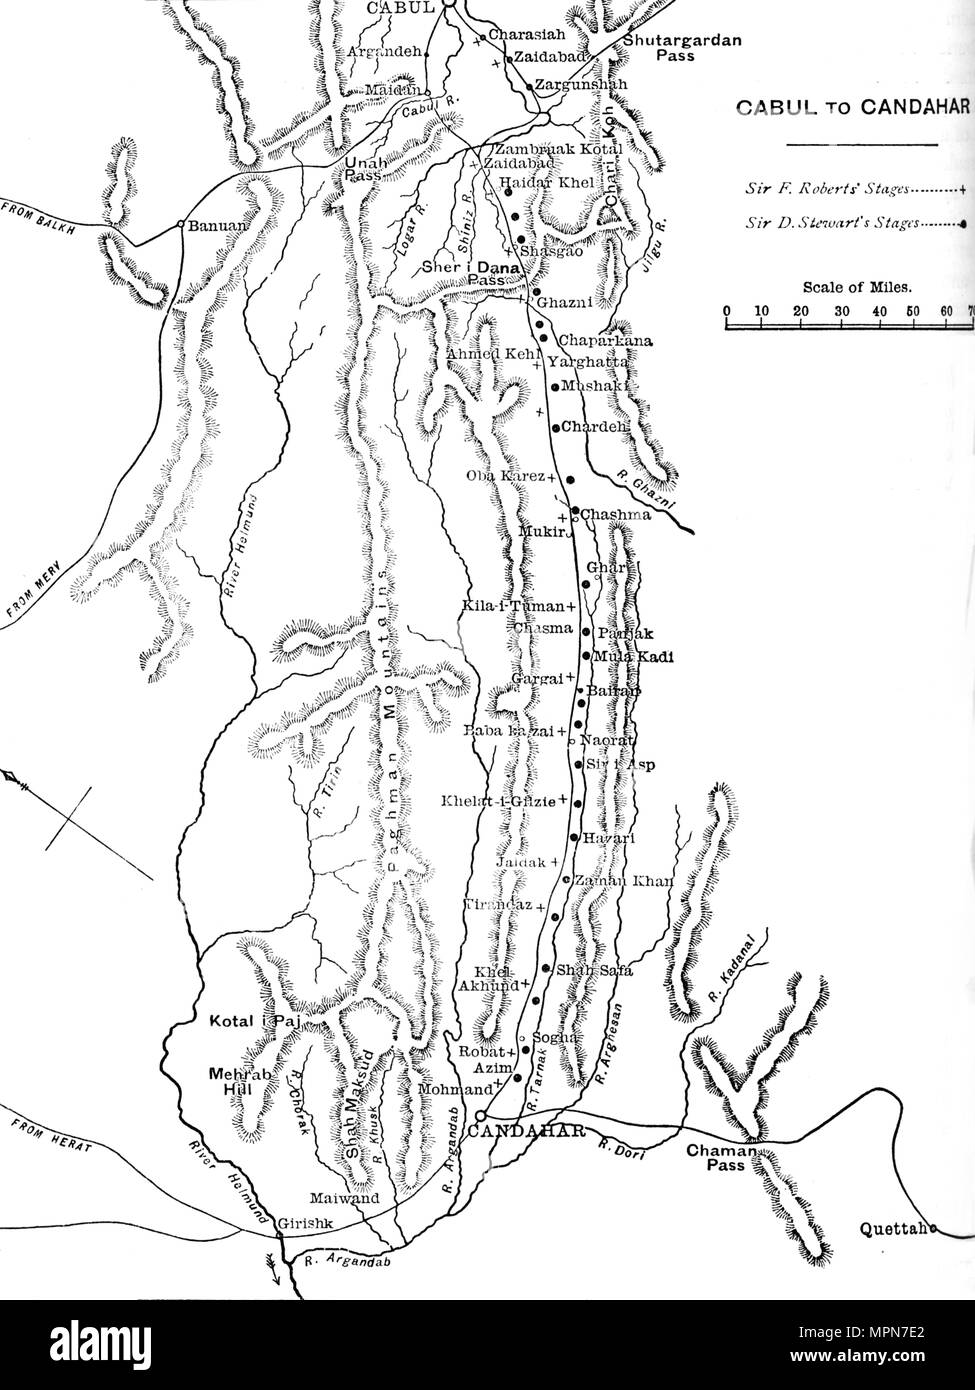 'Plan of General Roberts's March from Cabul to Candahar', c1880. Artist: Unknown. - Stock Image